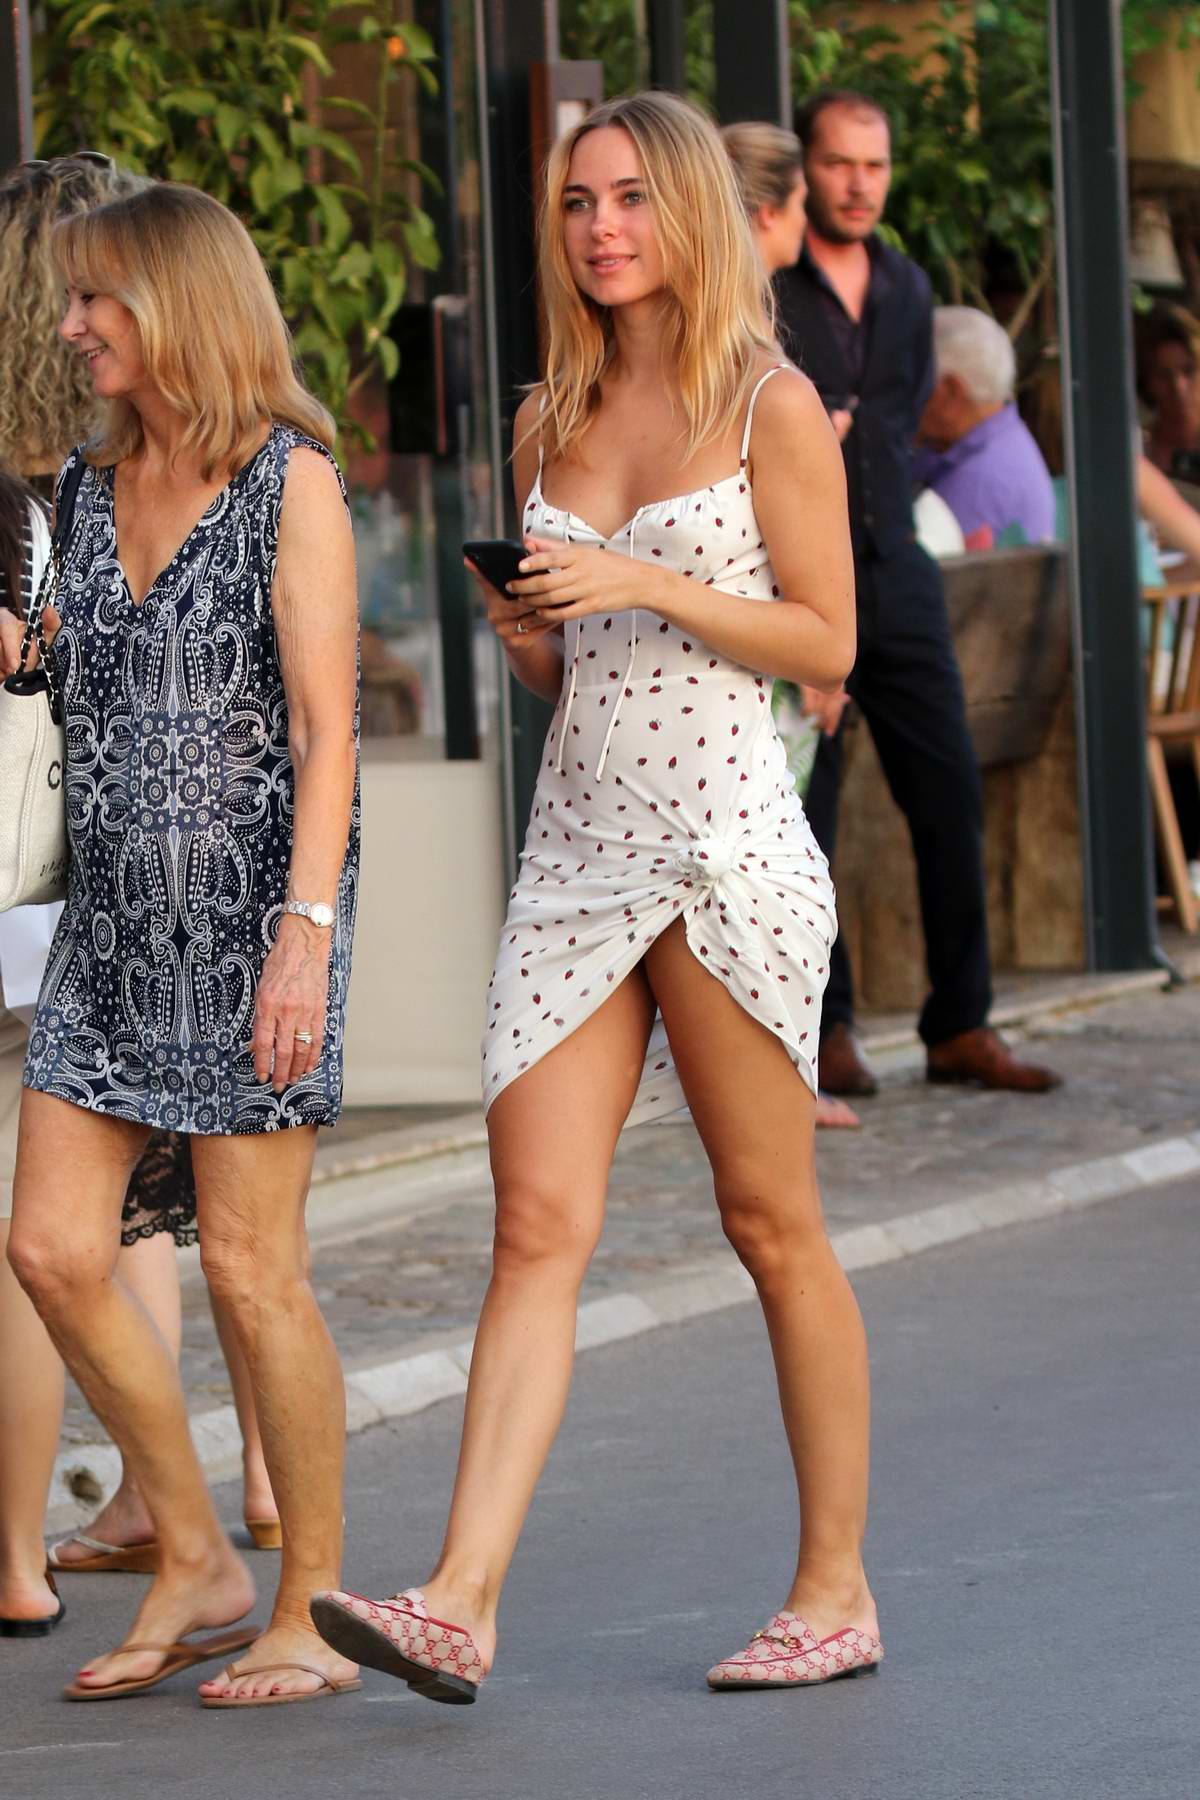 Kimberley Garner looks amazing in a white polka dotted minidress while out for a walk with her parents in Saint-Tropez, France